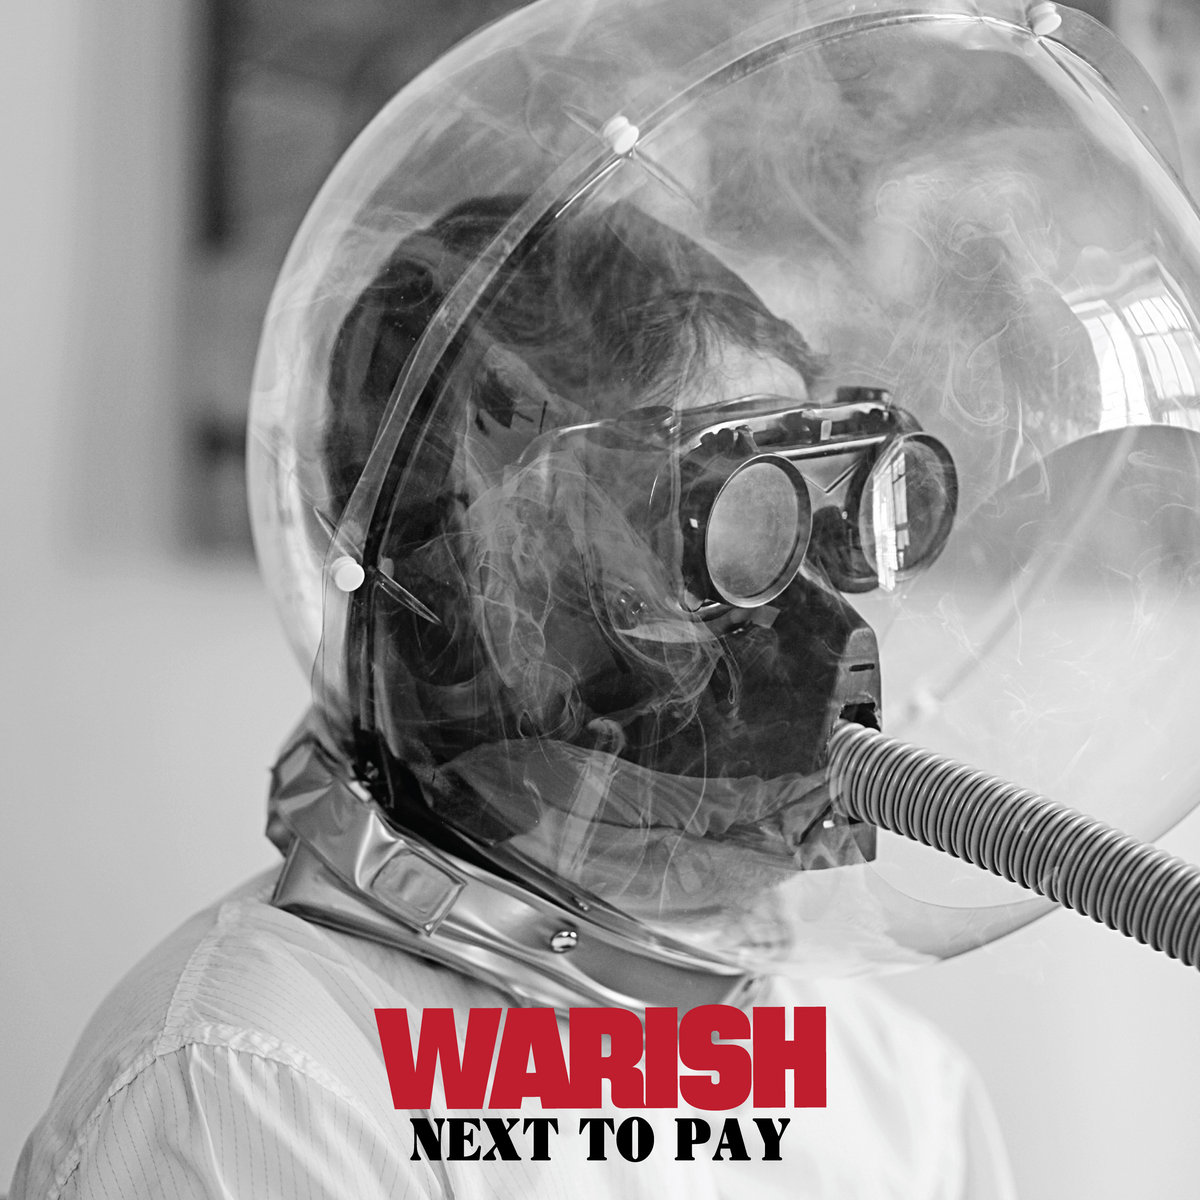 warish next to pay